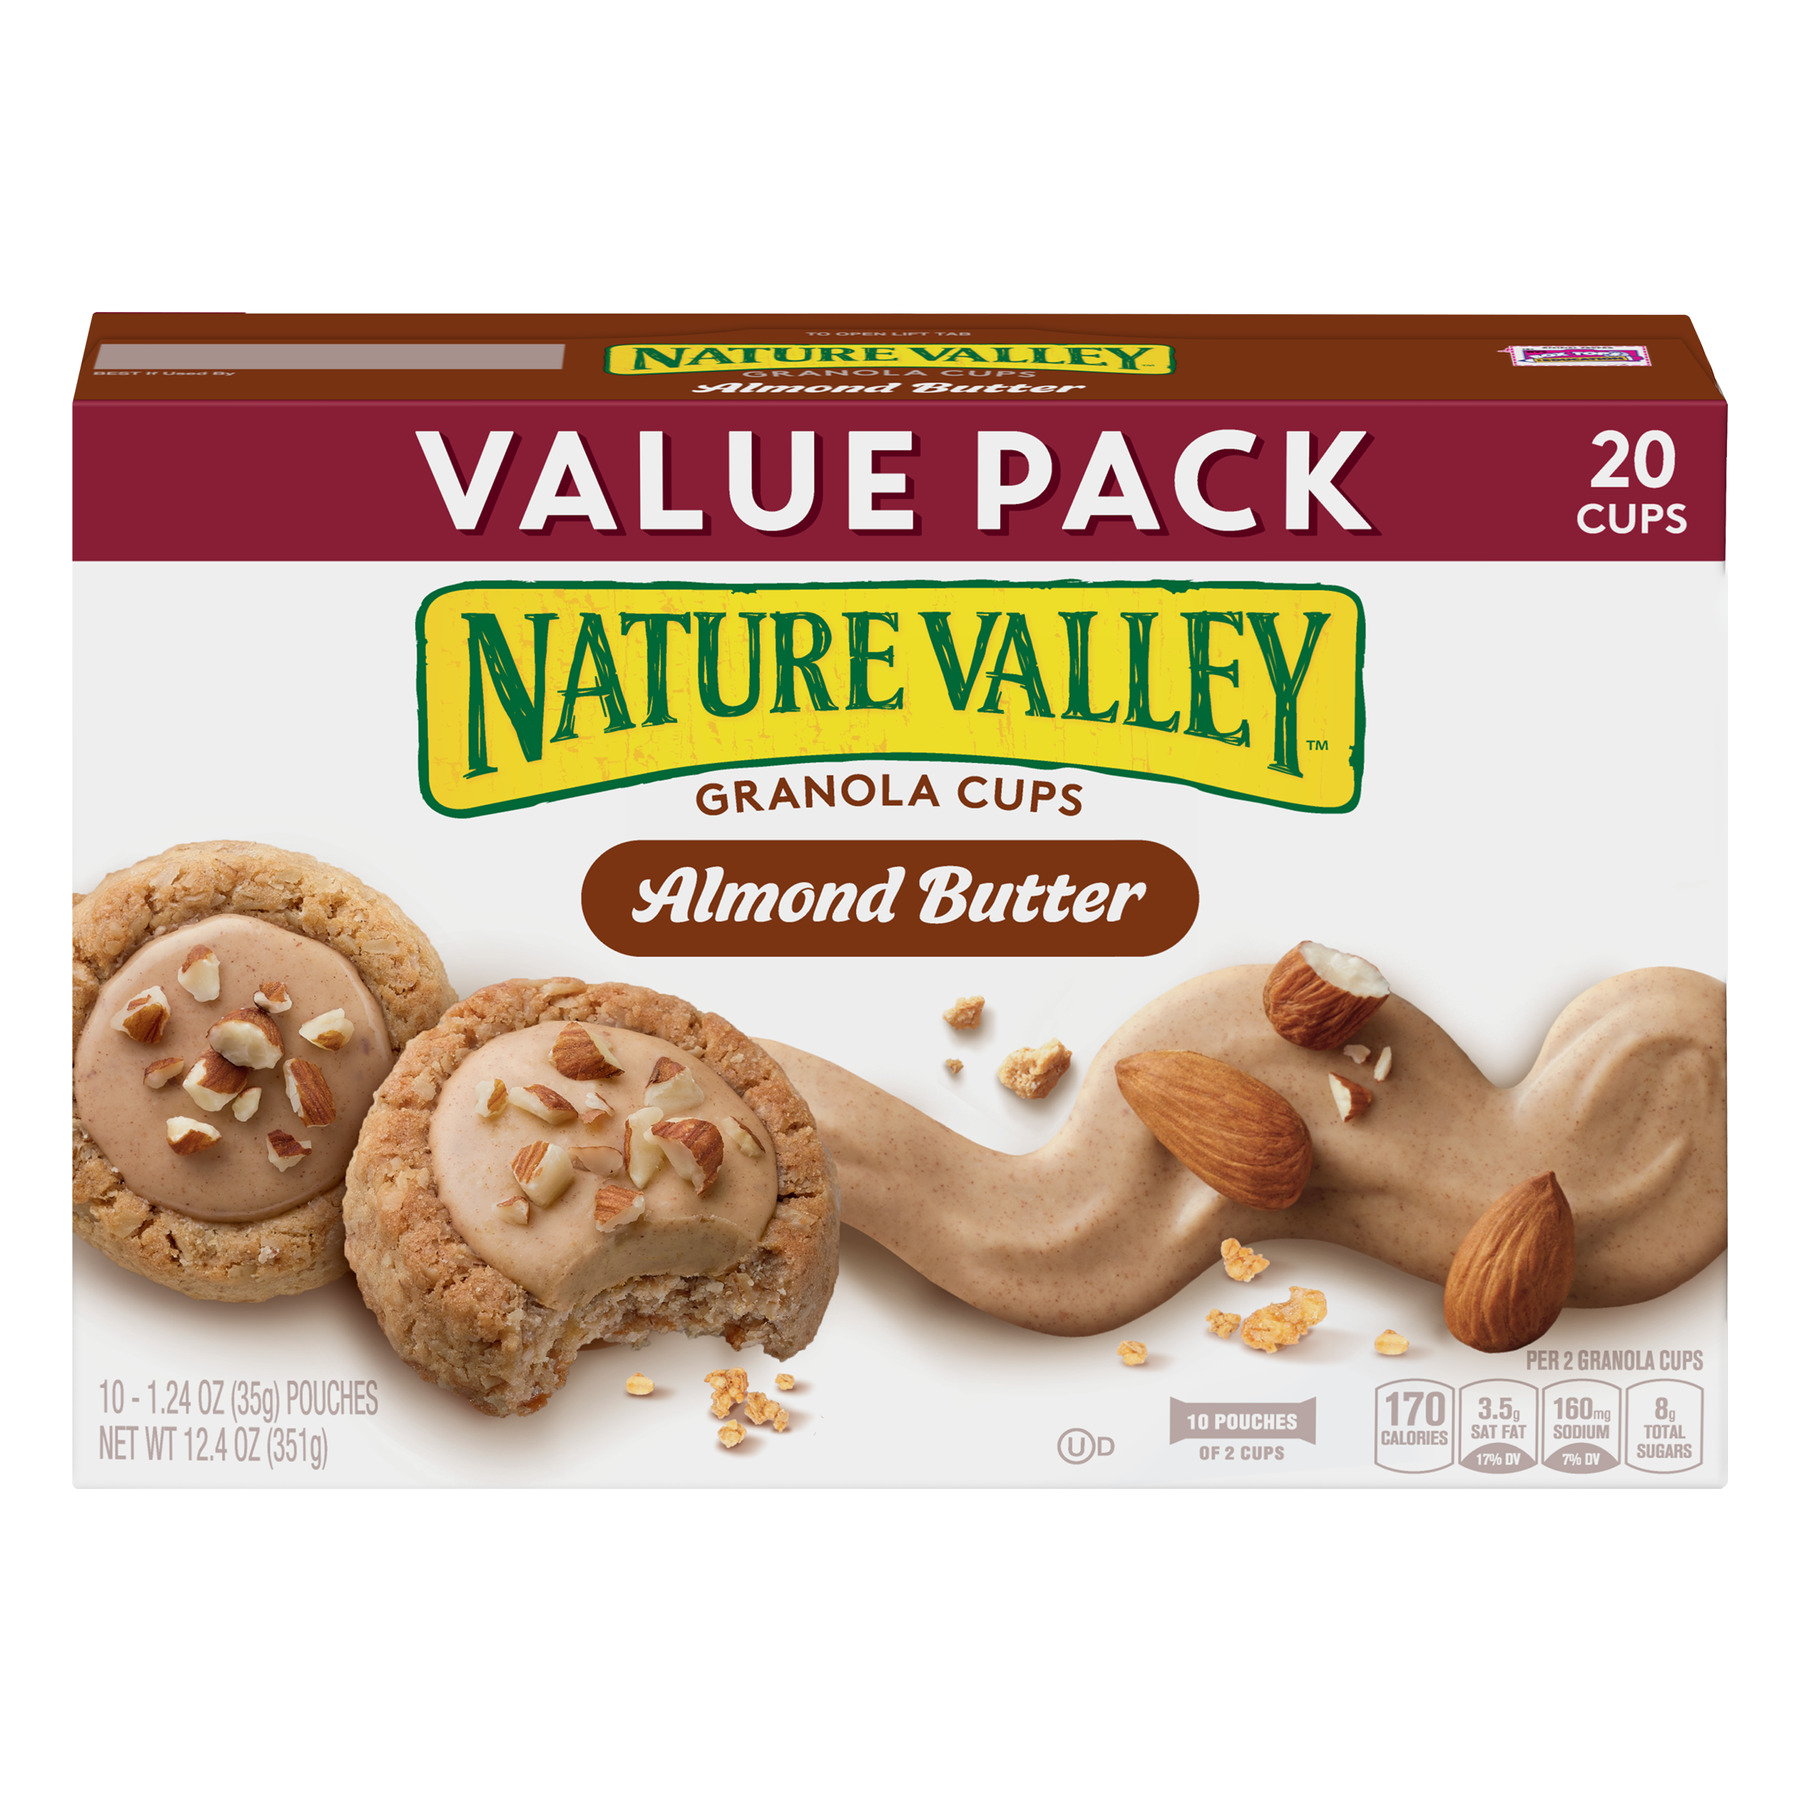 Nature Valley Almond Butter Granola Cups, 12.4 oz, 1.24 OZ